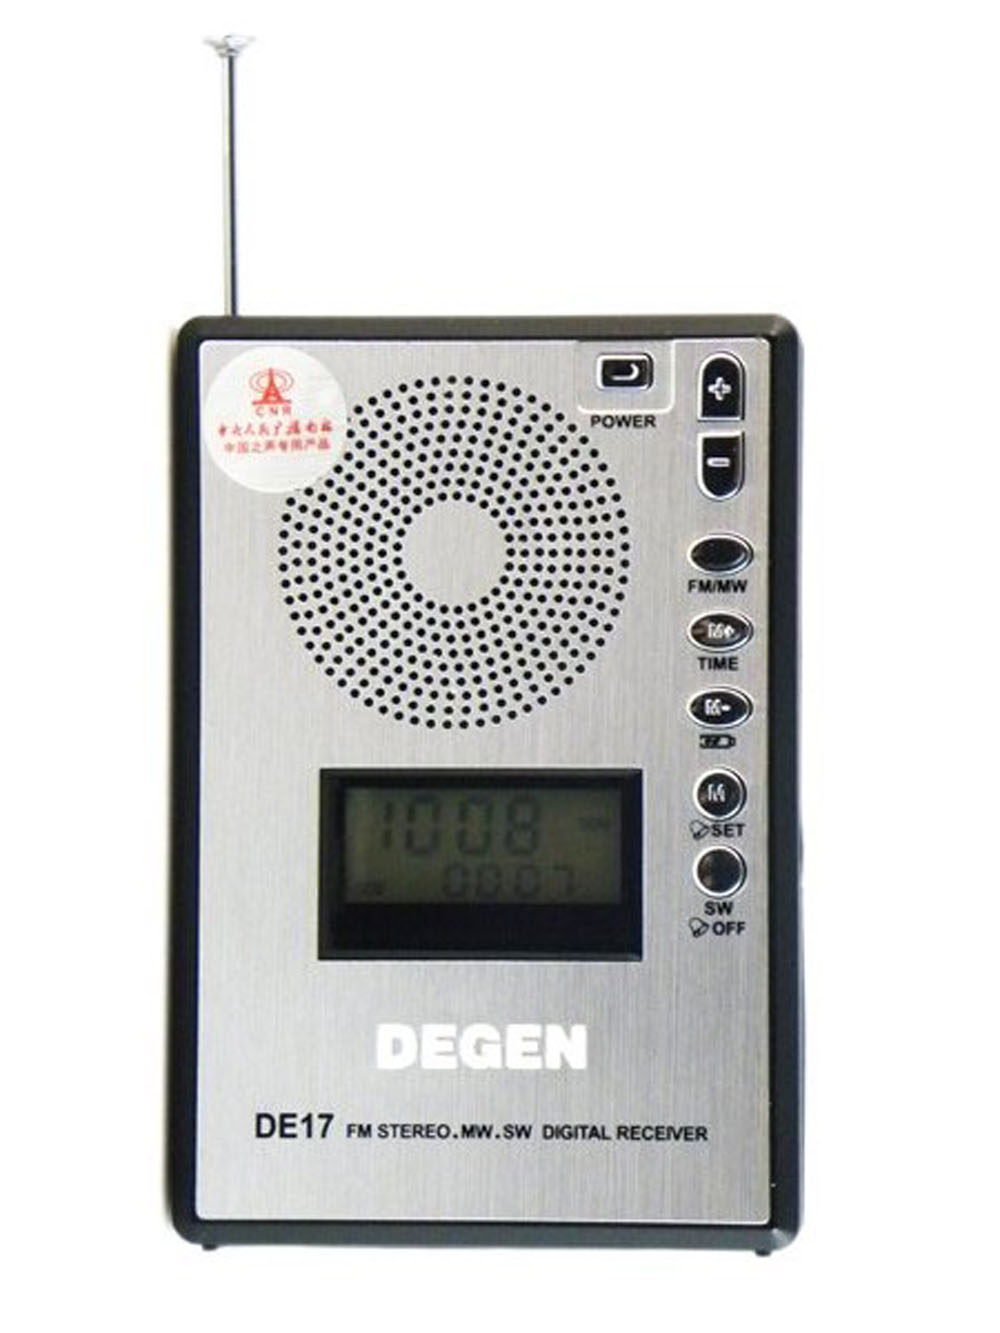 Degen DE17 FM Stereo MW SW LED Radio DSP World Band Receiver ATS Alarm Clock Radio Telescopic Antenna Lock Key / Reset A0904A 10 pcs pocket radio 9k portable dsp fm mw sw receiver emergency radio digital alarm clock automatic search radio station y4408h